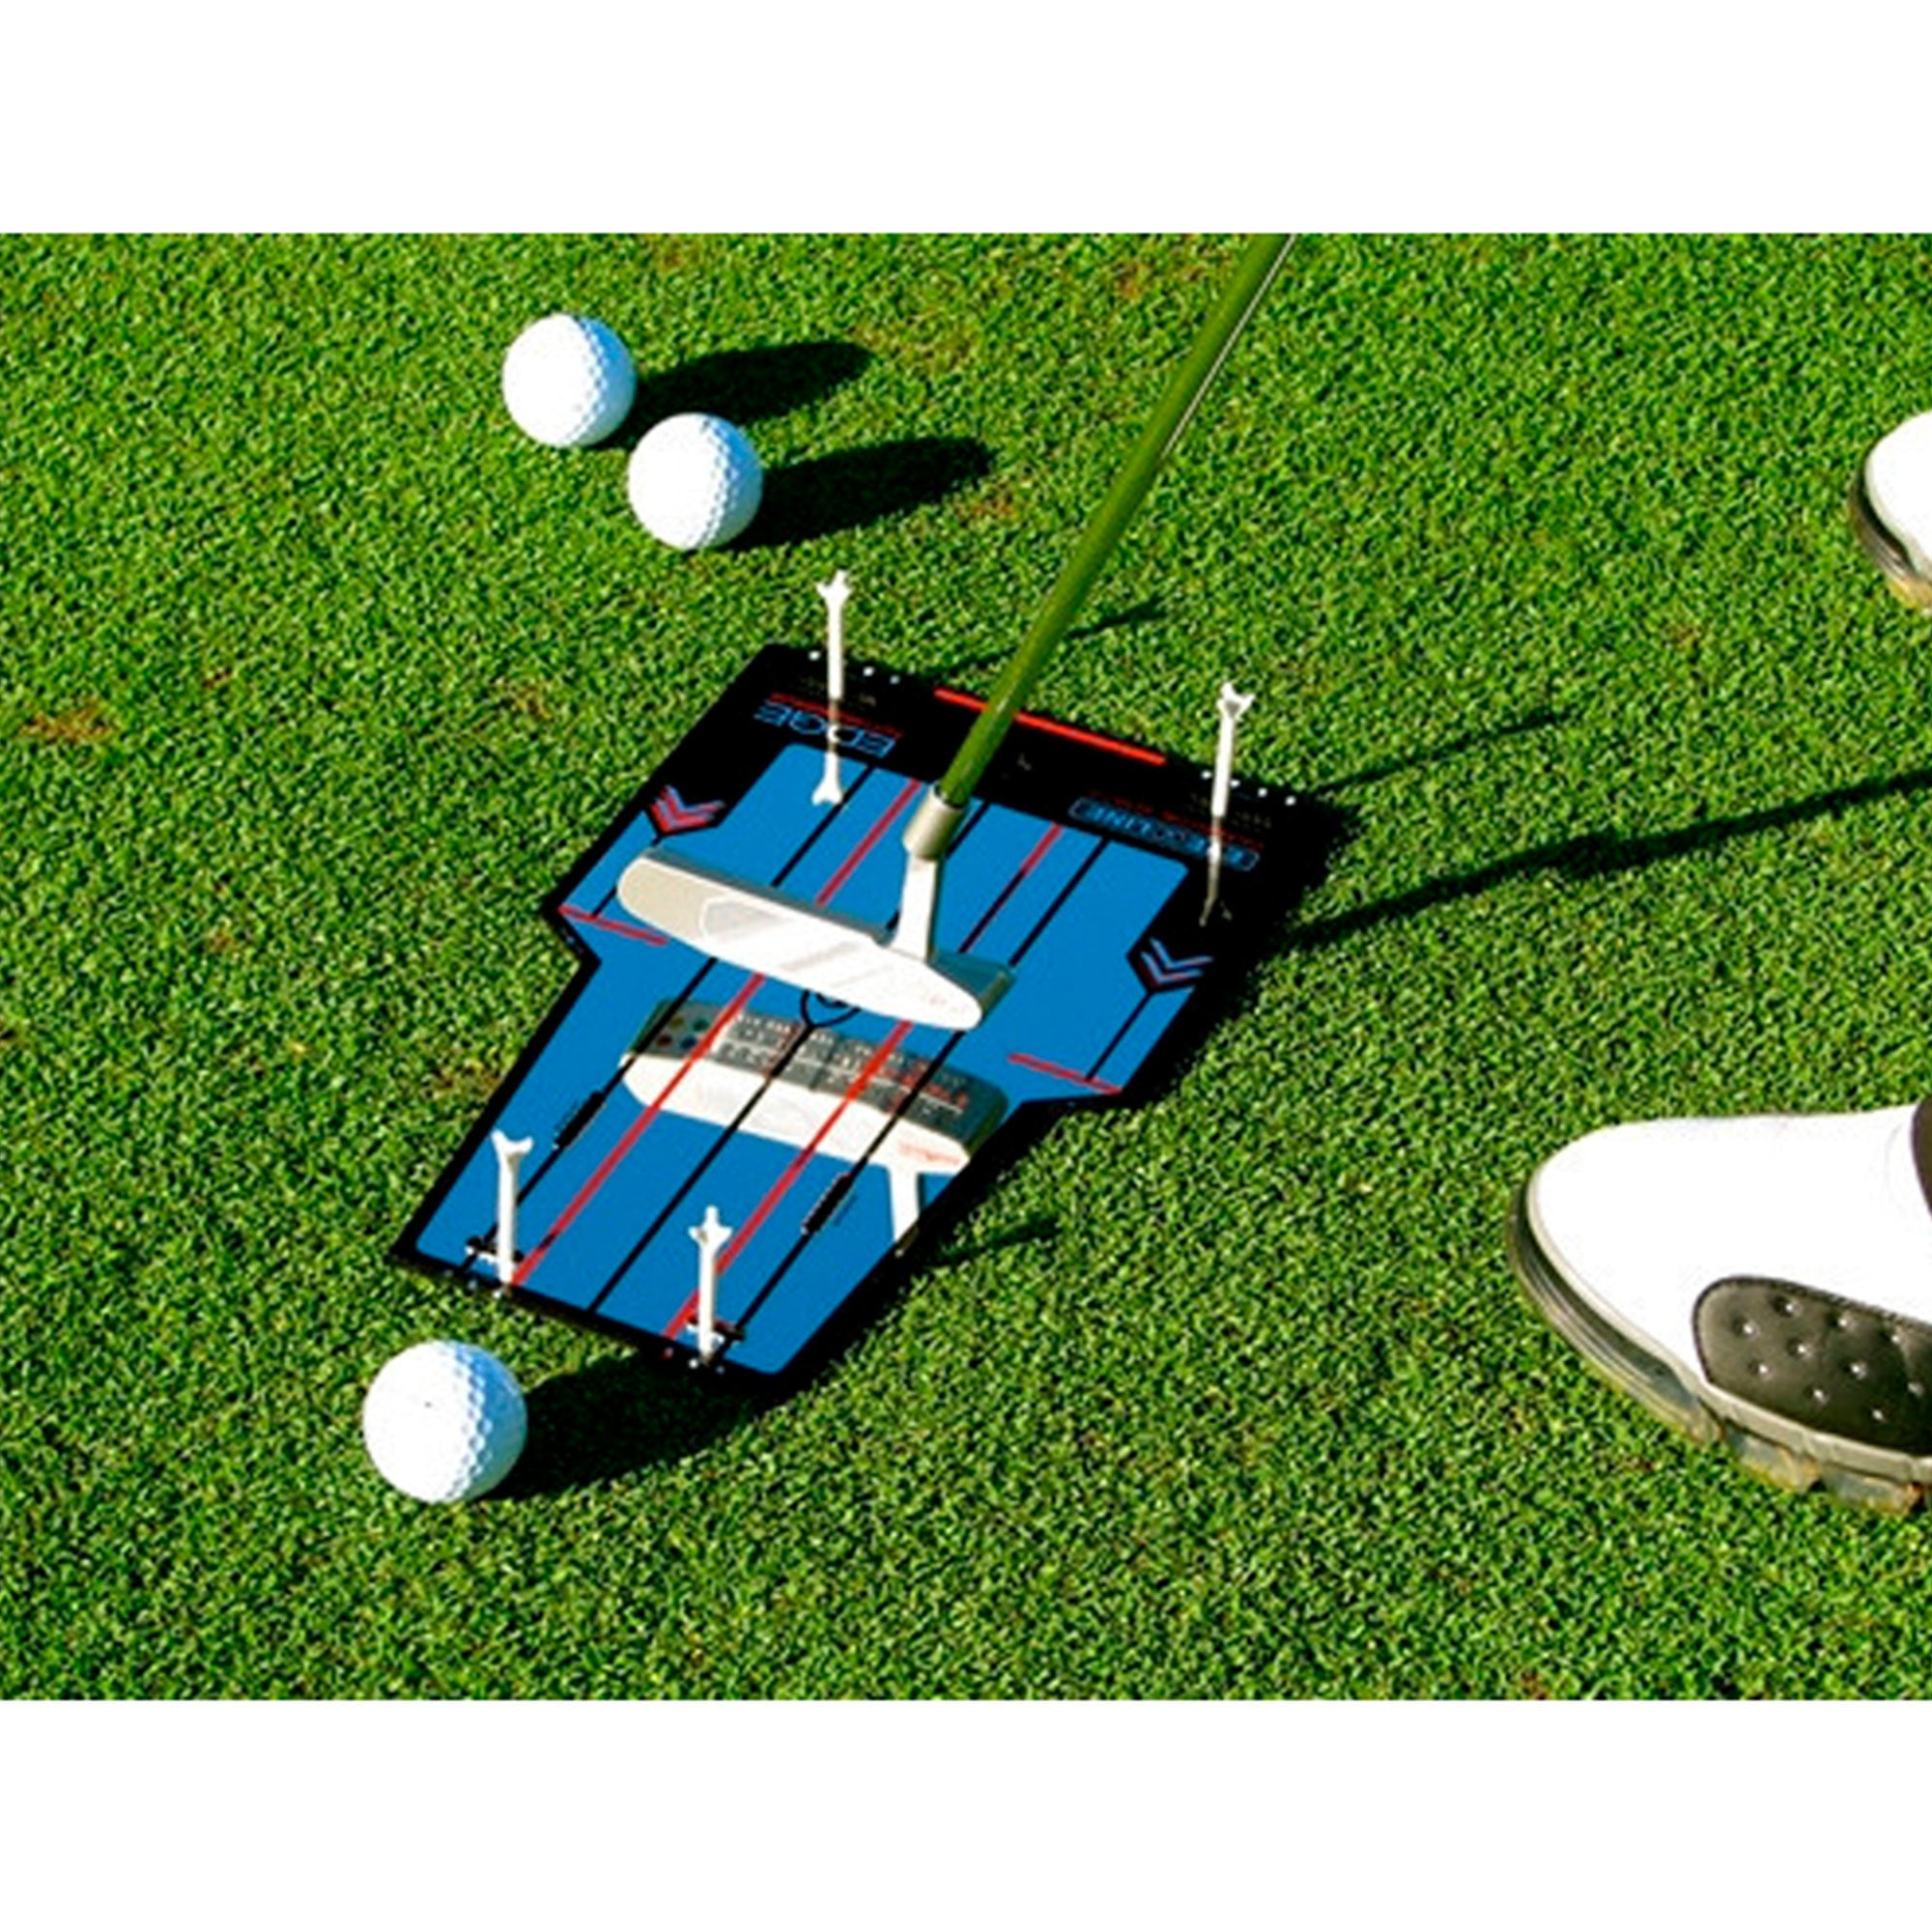 EyeLine Golf - Edge Putting Mirror - Putterfingers.com